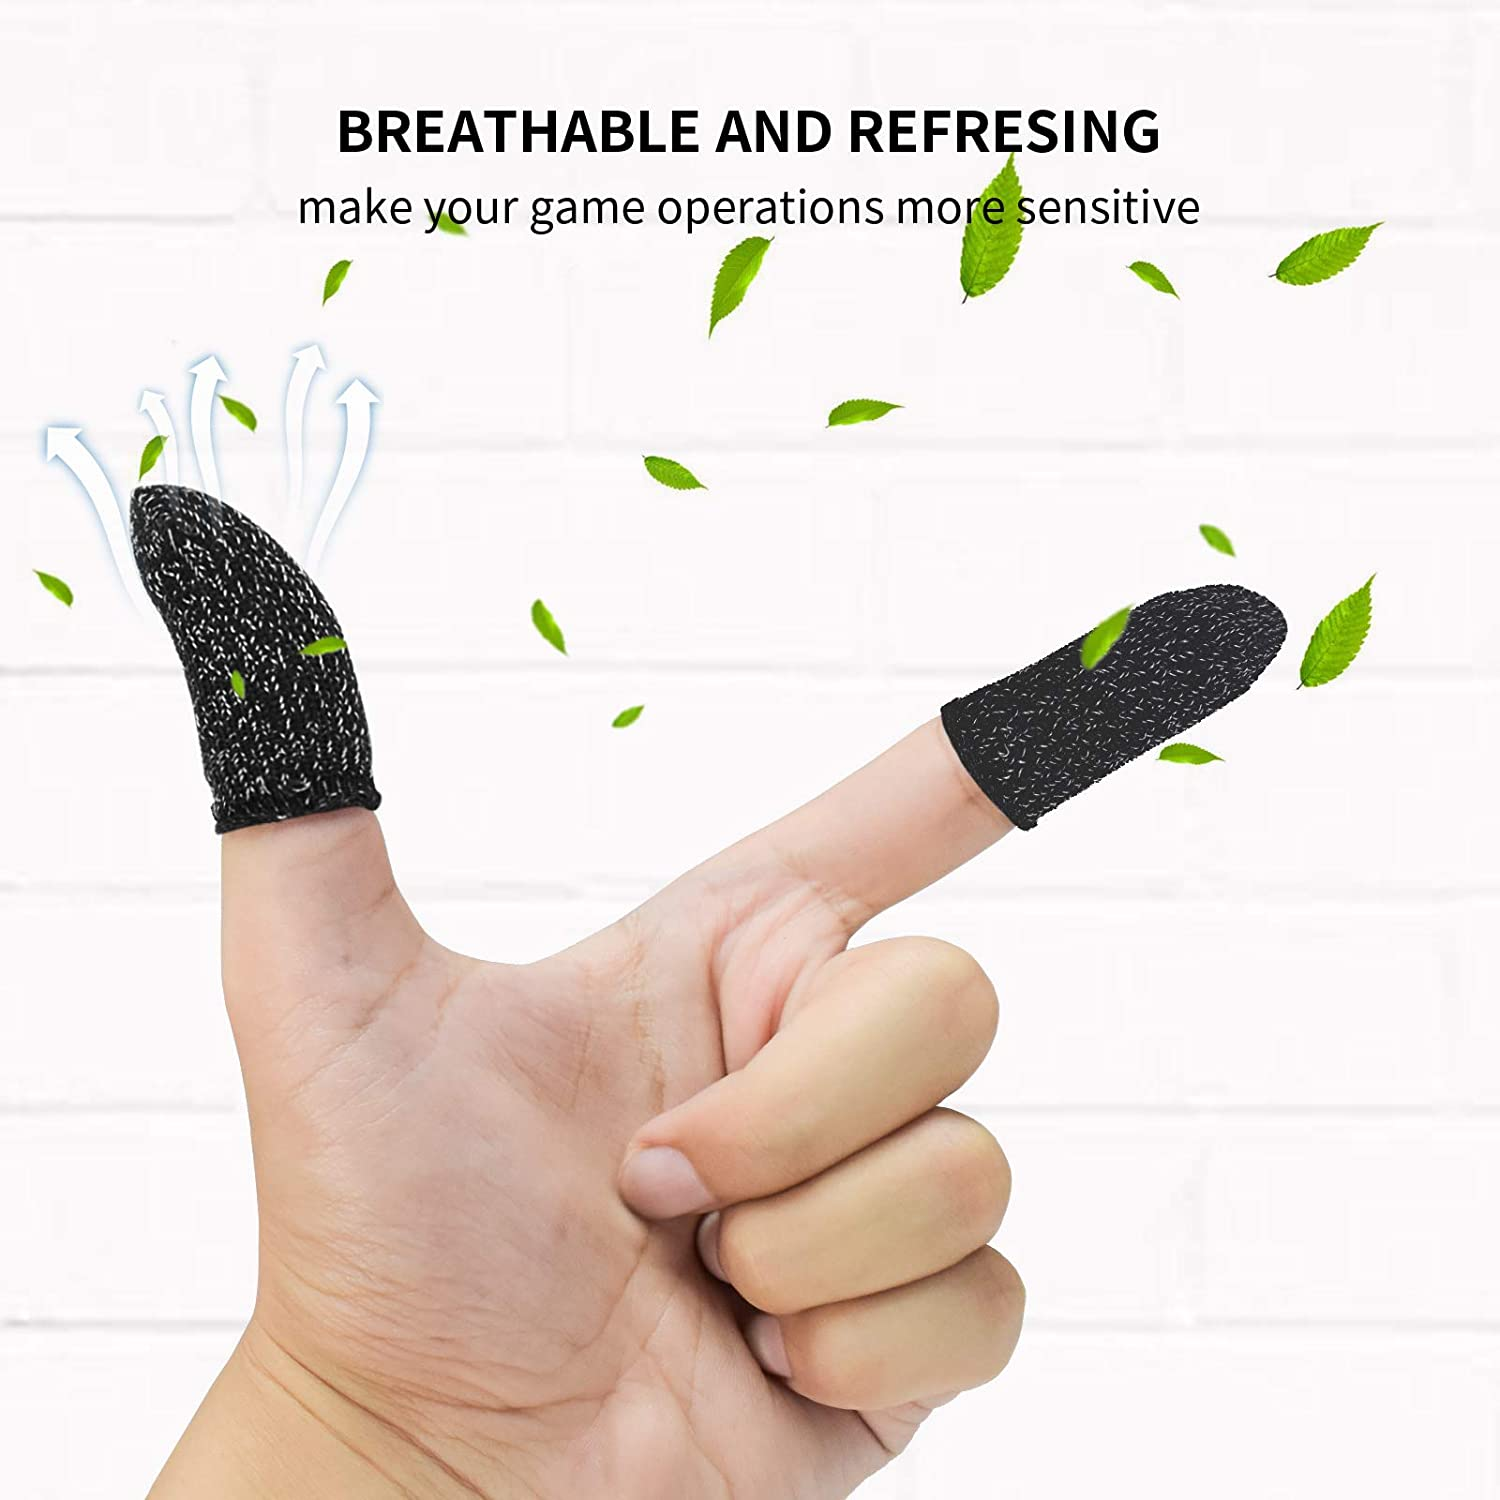 12 Pack Newseego PUBG Mobile Game Finger Sleeve Touch Screen Gaming Finger Sleeve Breathable Anti-Sweat Sensitive Shoot and Aim Keys for Rules of Survival//Knives Out for Android /& IOS